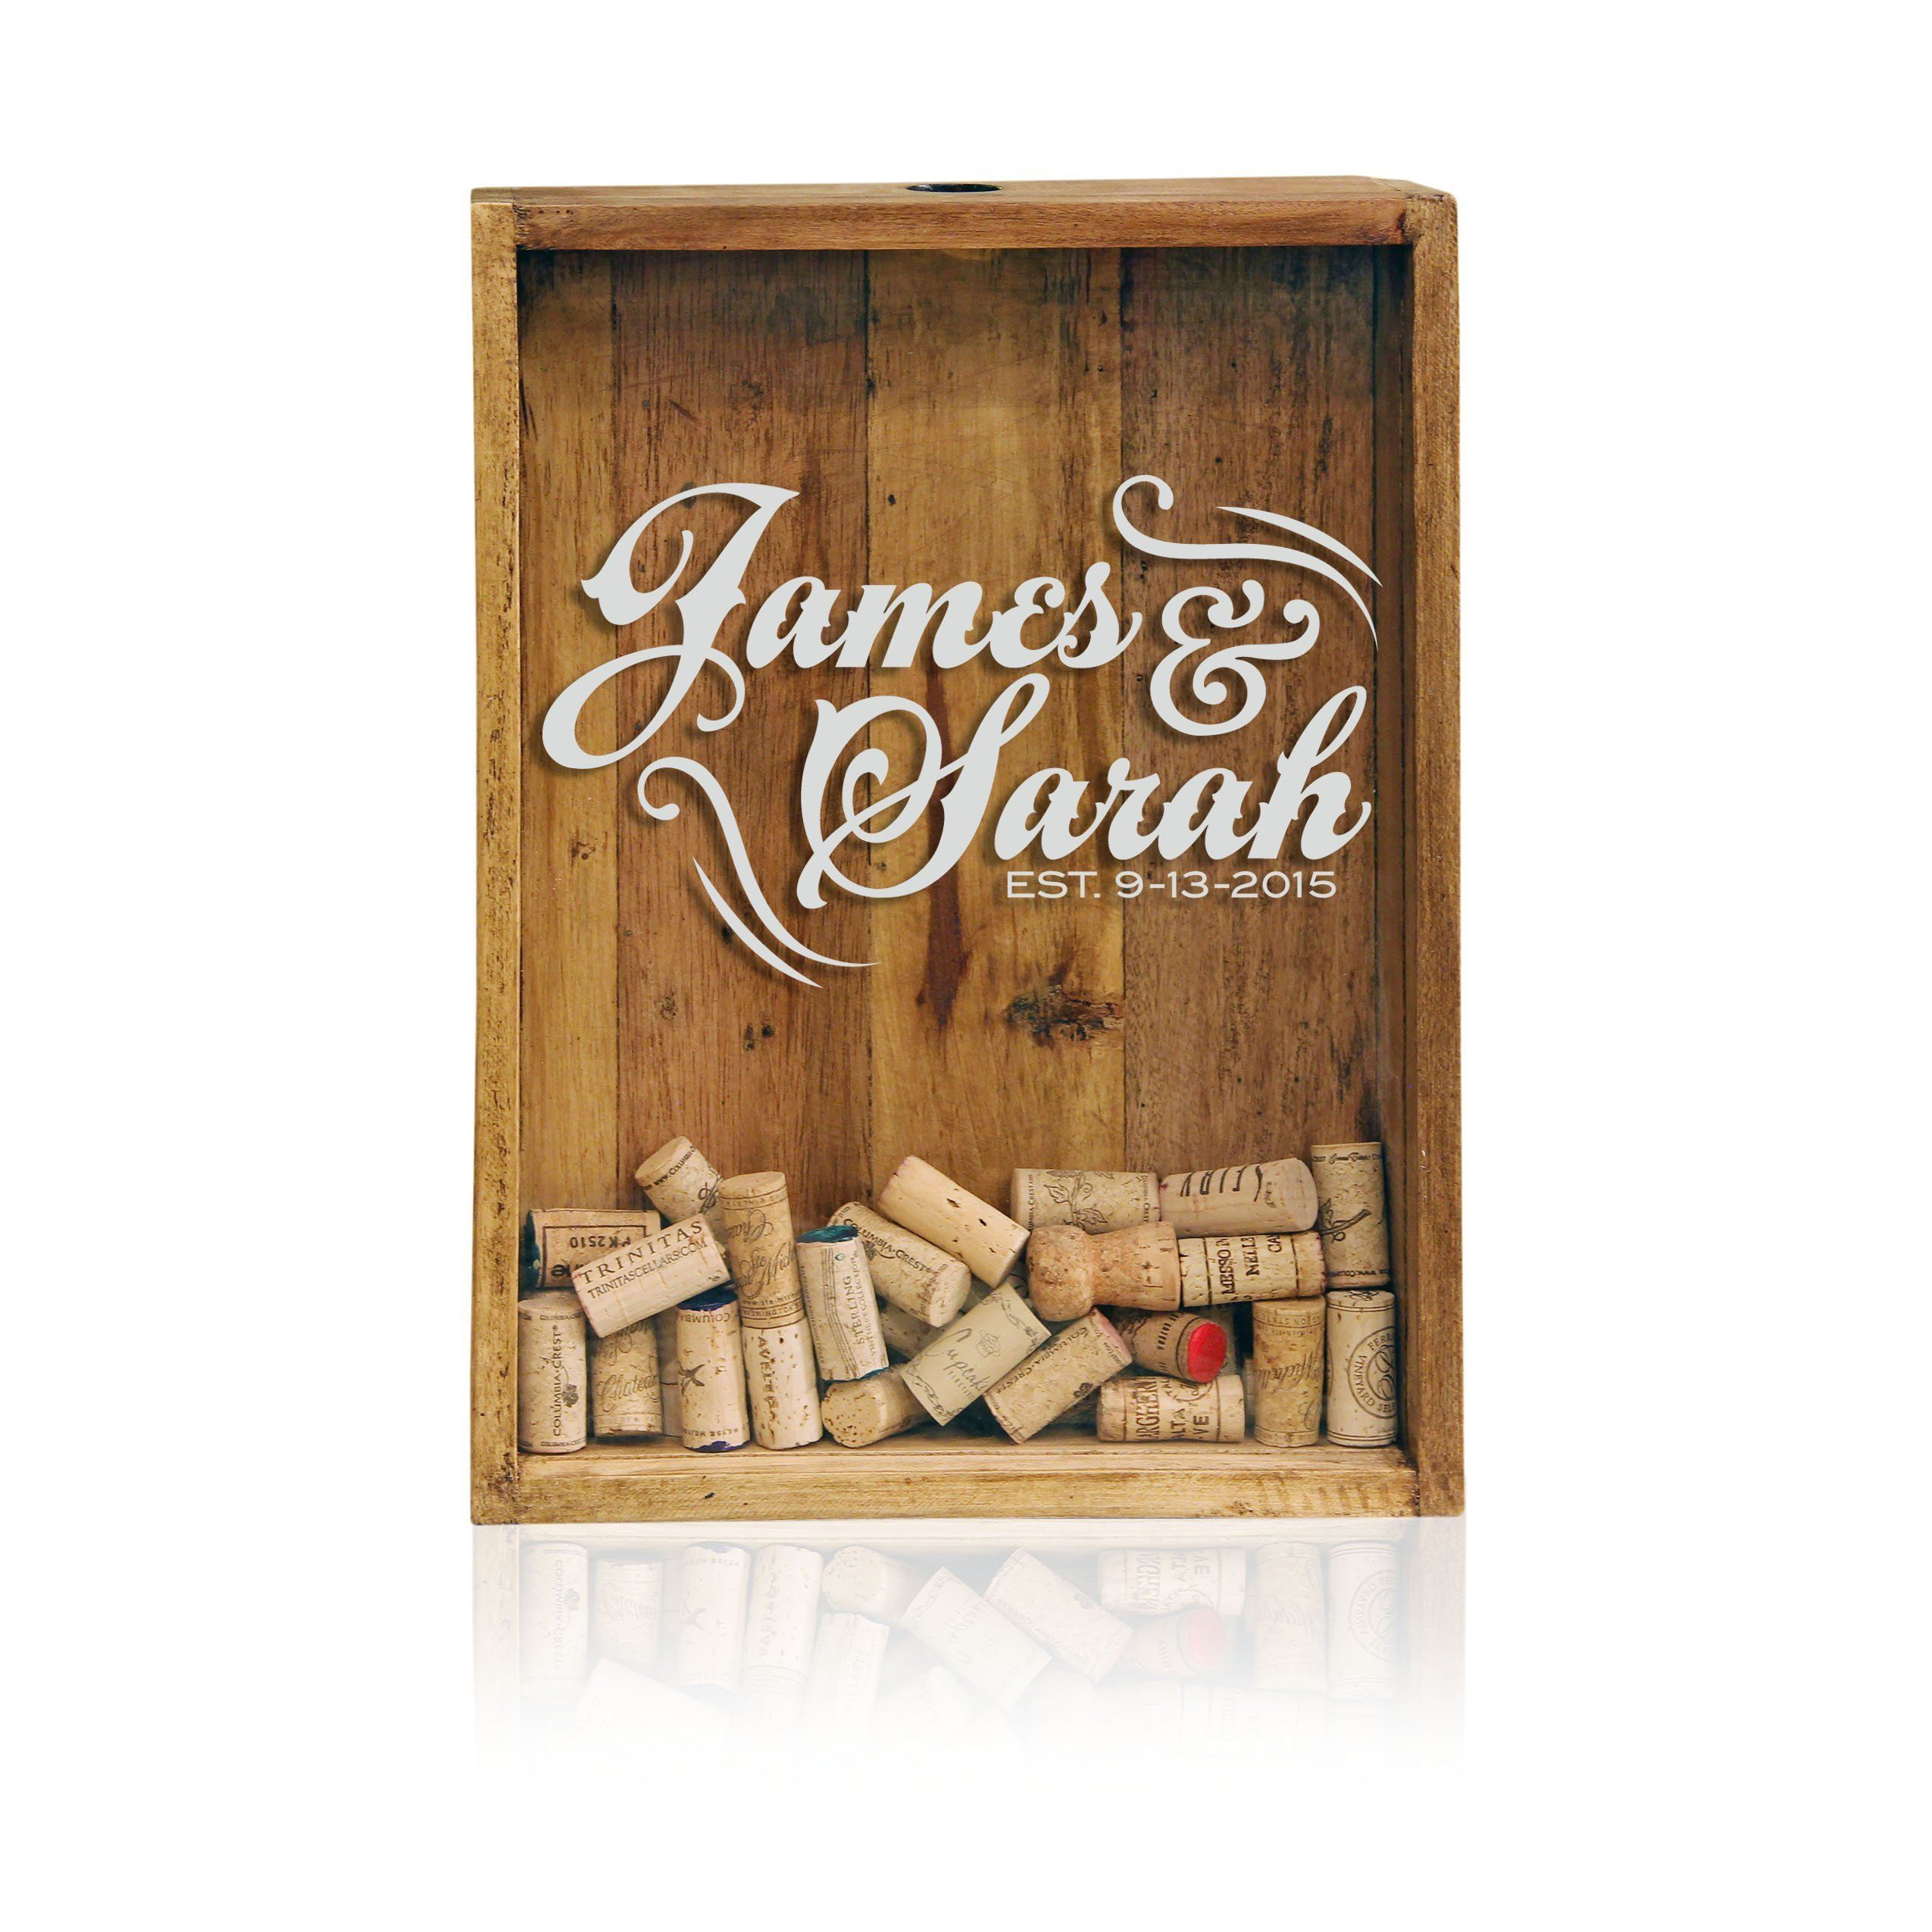 """12x16 Wine Cork Holder - Monogrammed- Shadow Box Display - Wedding Guest Book - Personalized Wine Cork Holder. The Original Wine Cork Drop Box - hand crafted and customized by us, brought to life by you! Wine Corks now have a place to call home. Product Description: """"12x16 Reclaimed Wood Collection"""" This box is built out of 100% reclaimed wood. It's coated with a natural beeswax finish to enhance the woods natural beauty and imperfections. Complete with removable acrylic glass, laser…"""